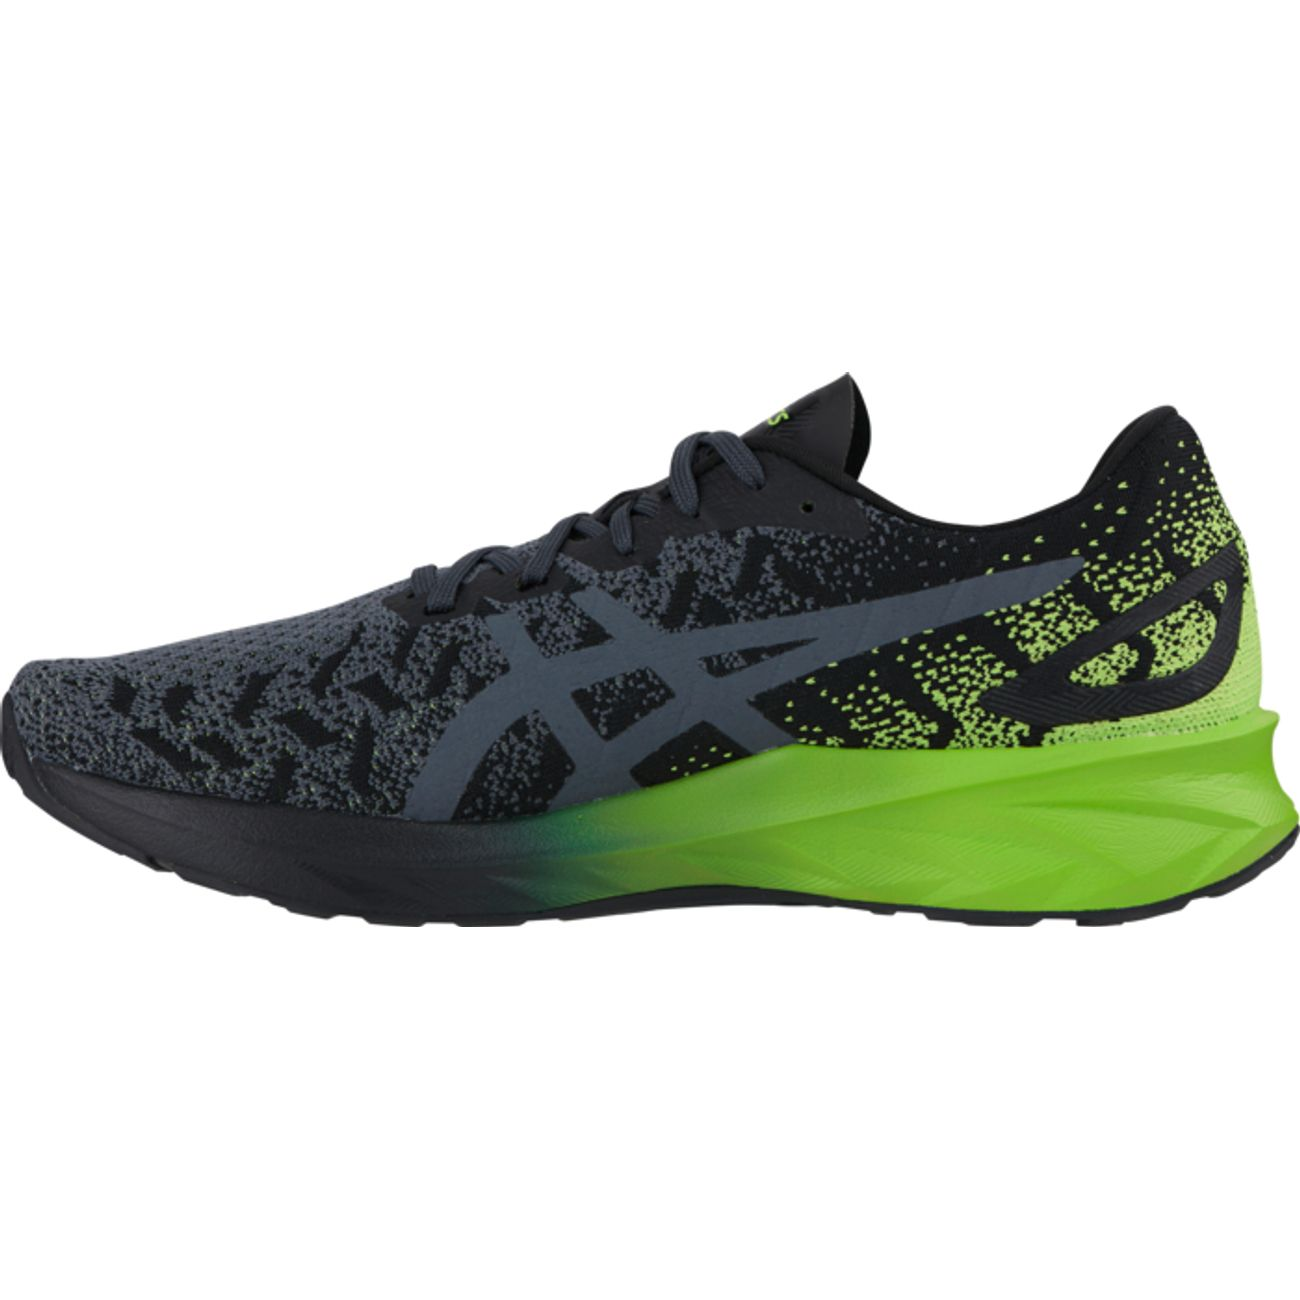 CHAUSSURES Route homme ASICS DYNABLAST